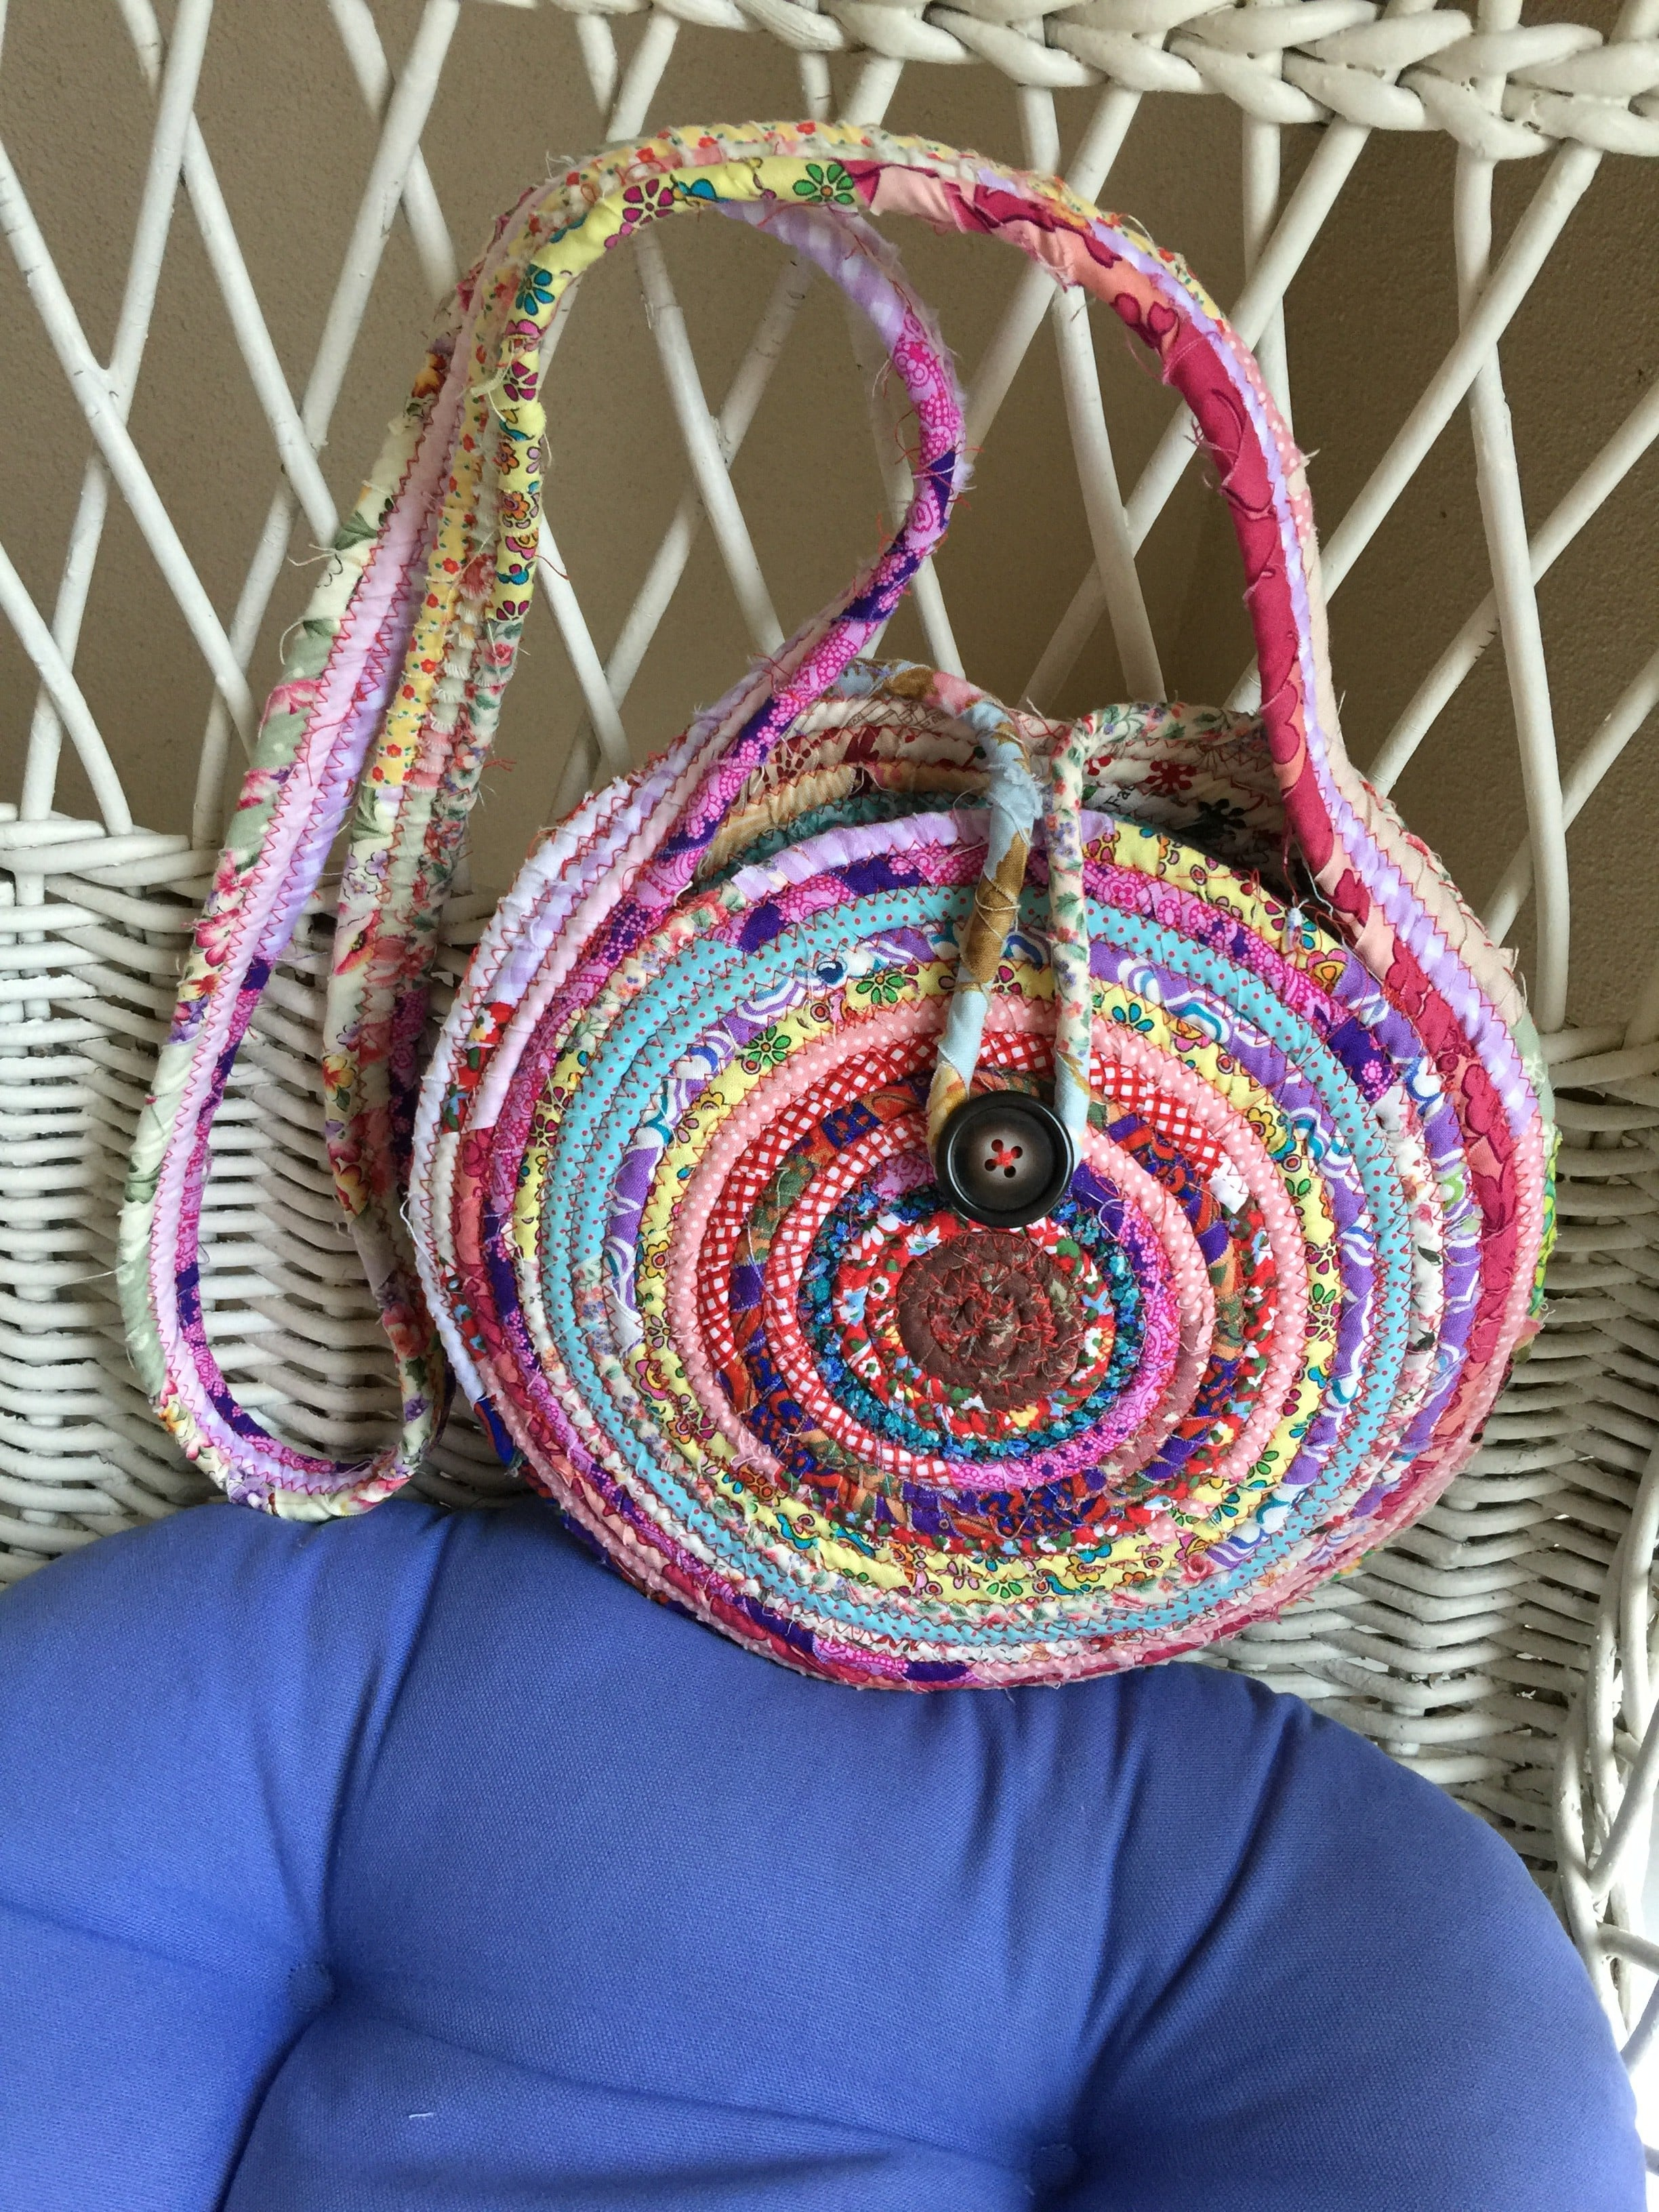 Keys Made Near Me >> End of Day Quilters Walking Bag - susies-scraps.com